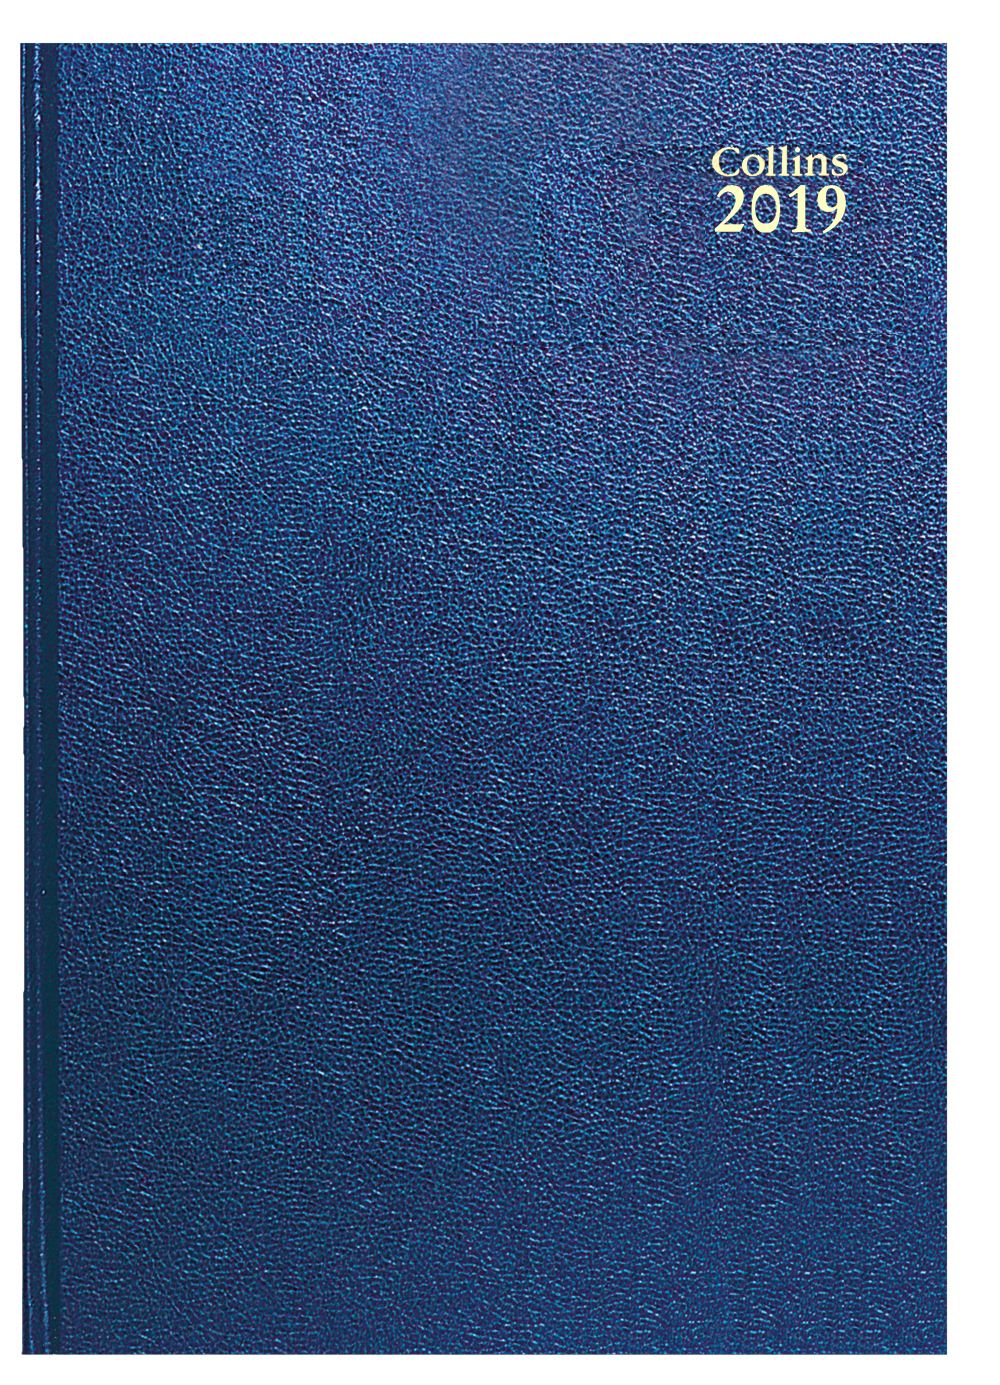 Collins 2019 Dy/Page A4 Diary 44 Blue